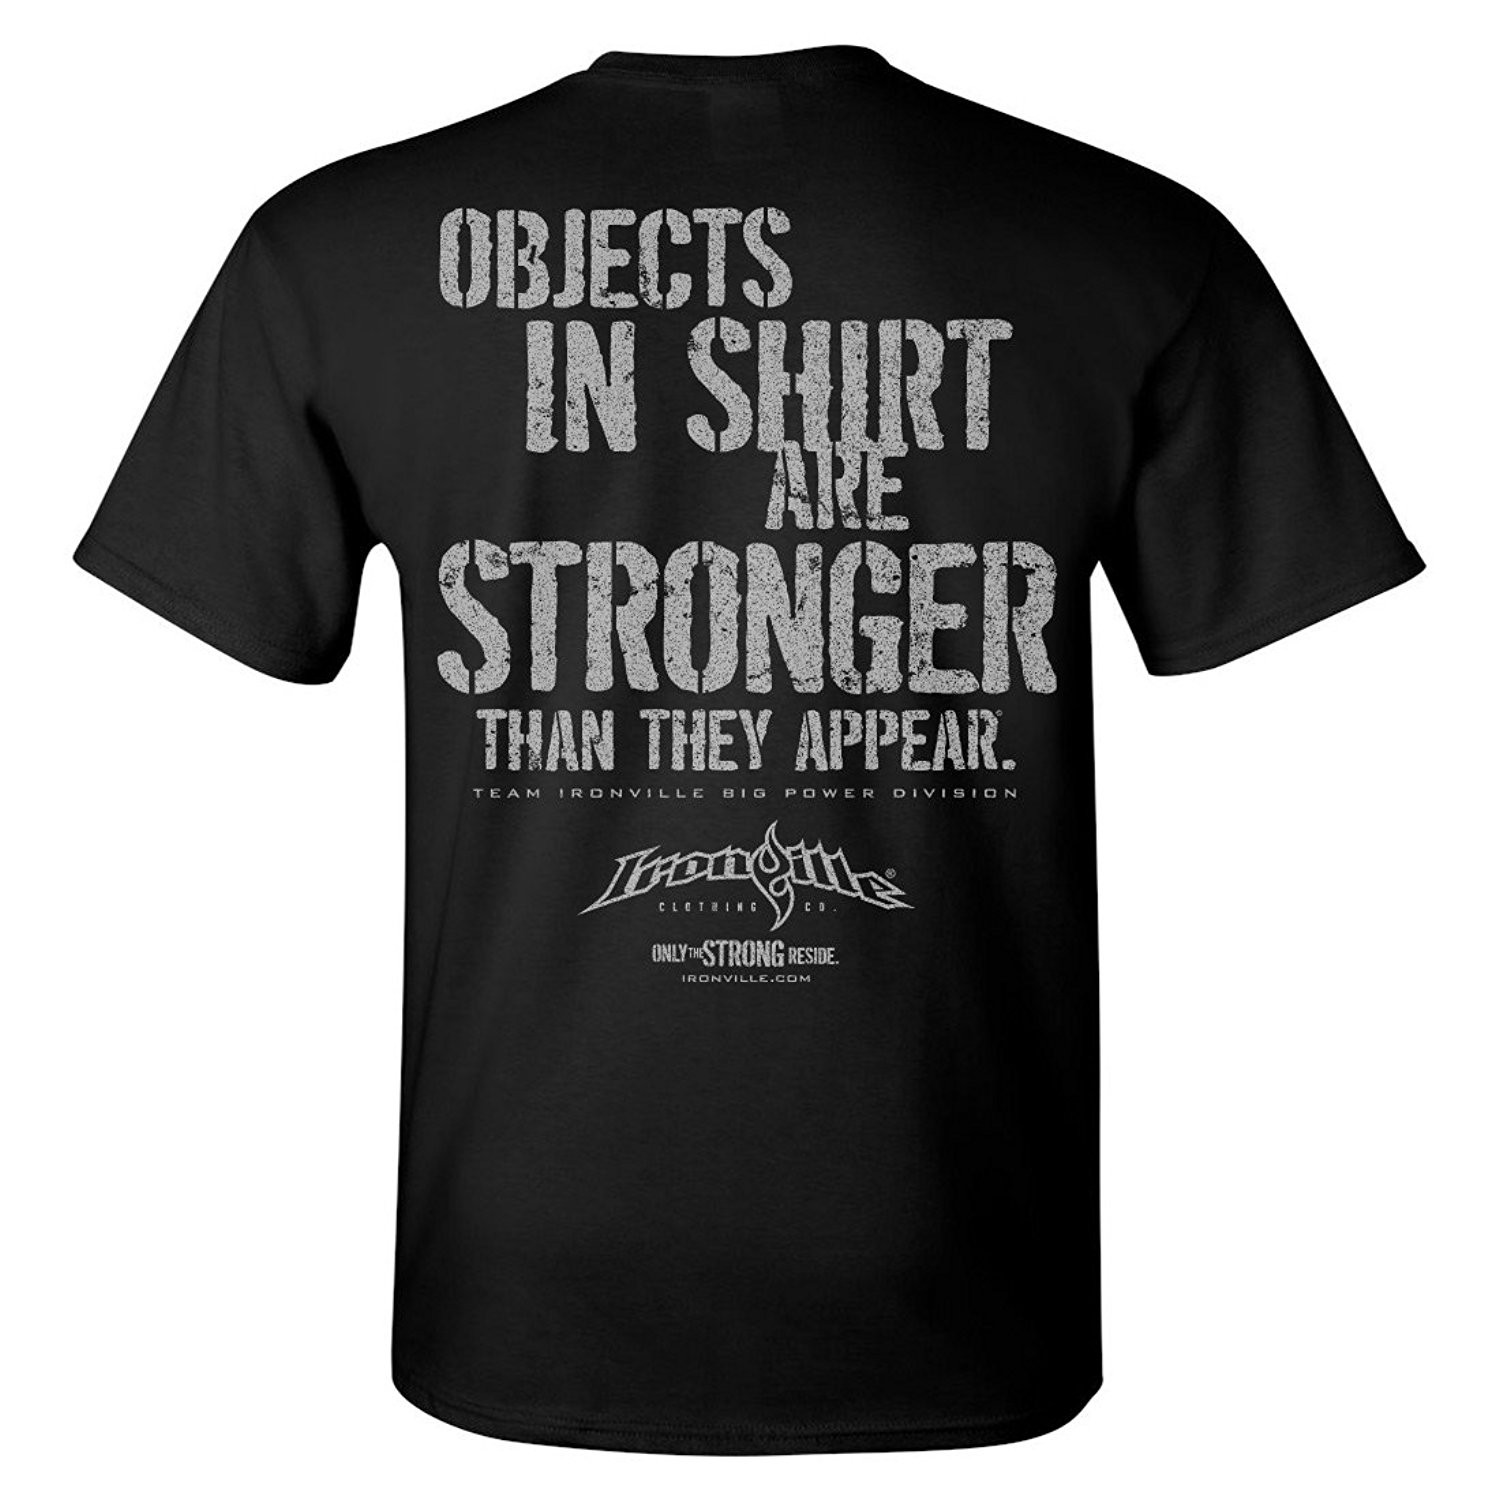 Objects In Shirt Are Stronger Than They Appear - Mens T-Shirt